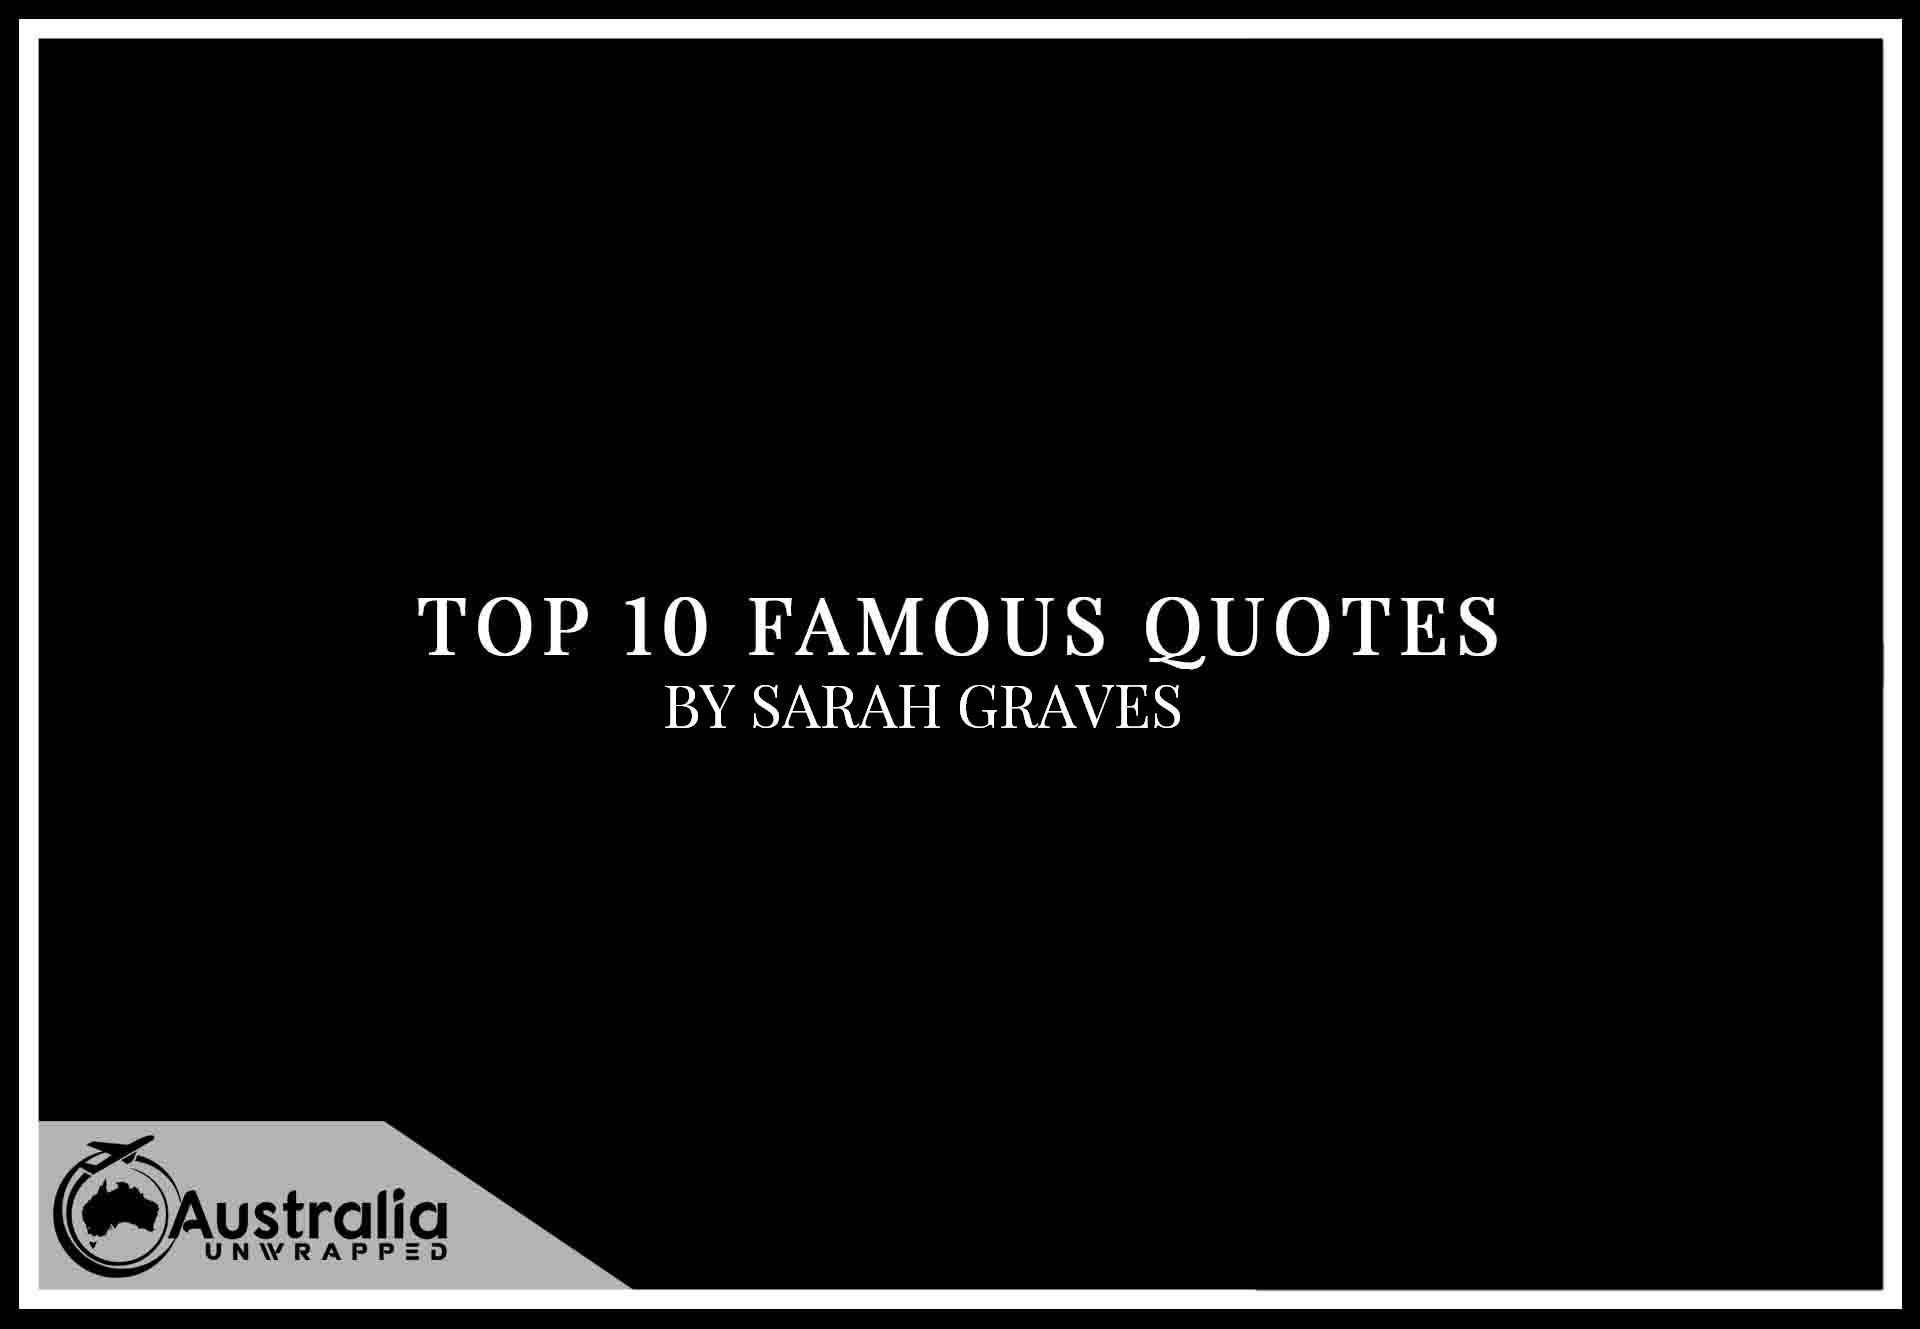 Top 10 Famous Quotes by Author Sarah Graves